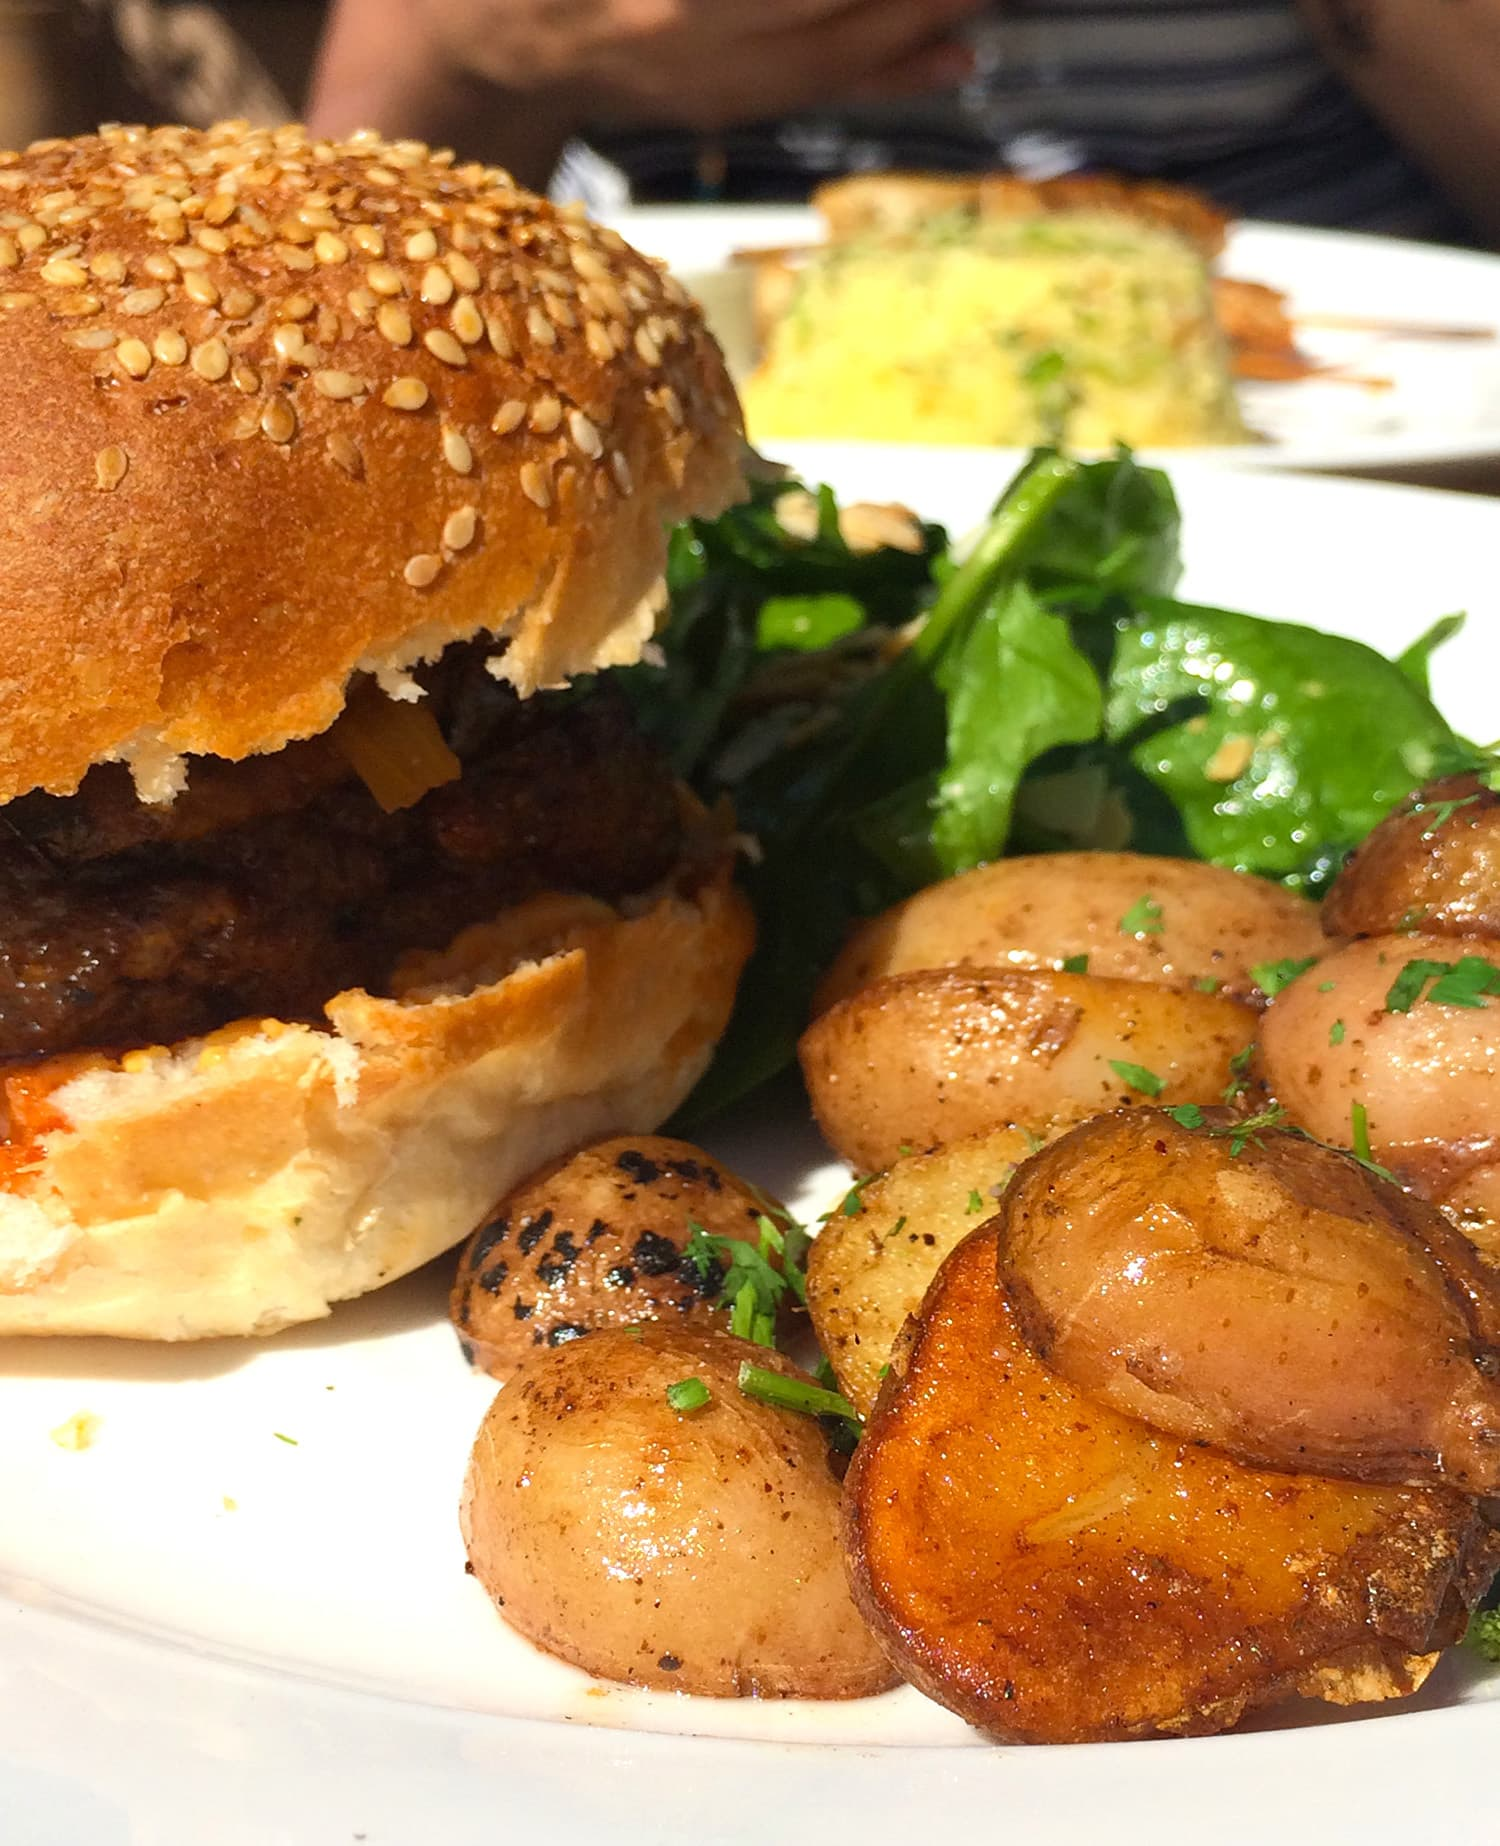 The spiced lamb burger I ordered at Nomad.